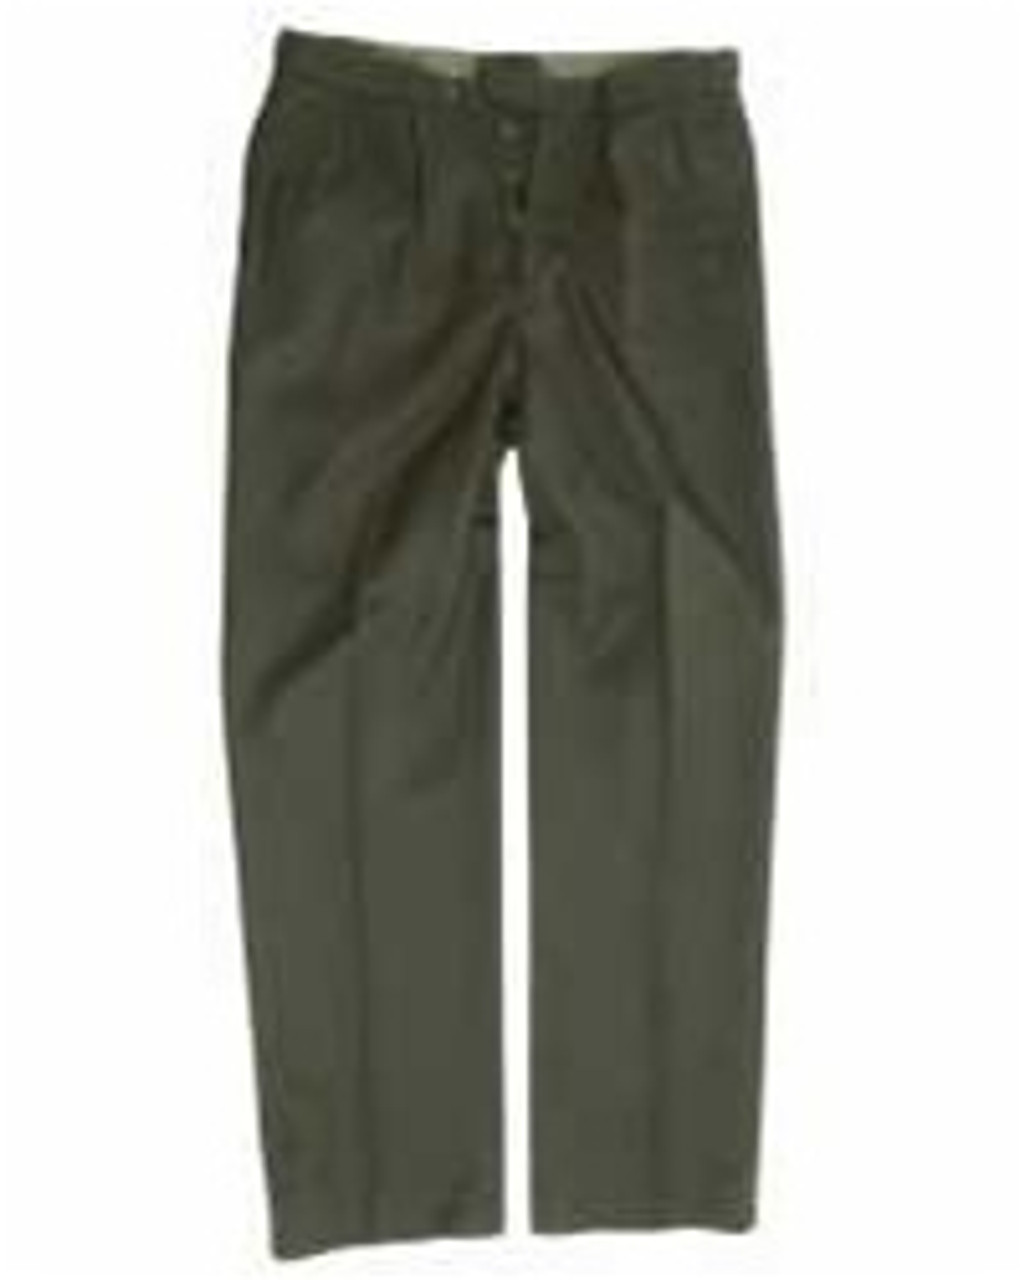 Czech OD M98 Uniform Pants - Used - Used from Hessen Antique